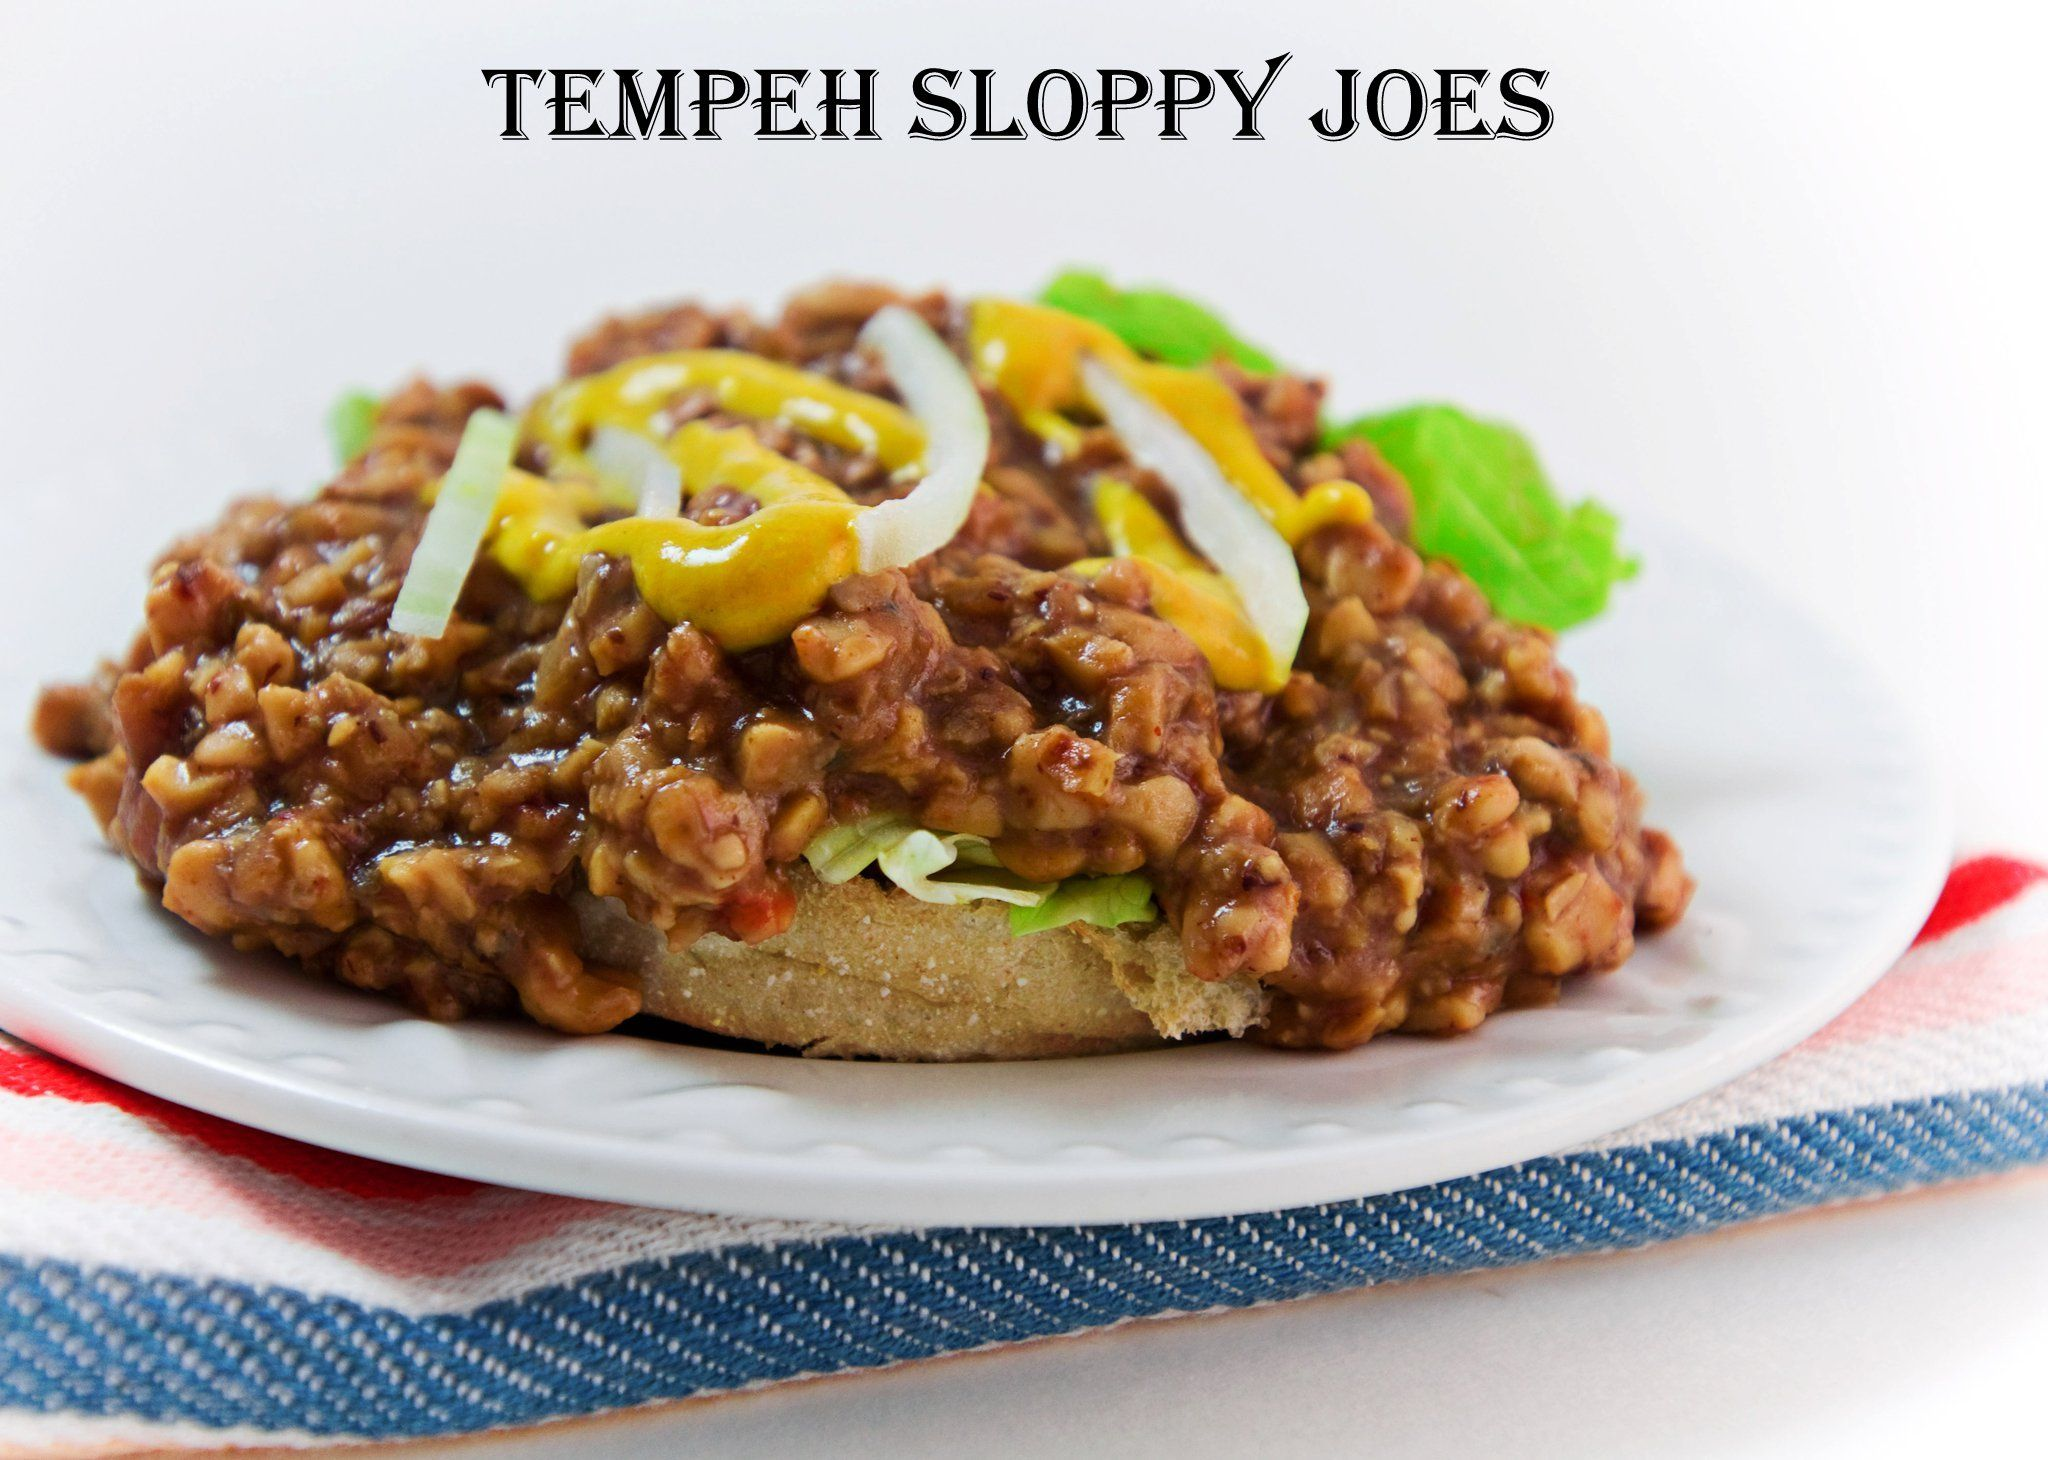 Tempeh Sloppy Joes | Melomeals Healthy E-Book Recipes | Pinterest